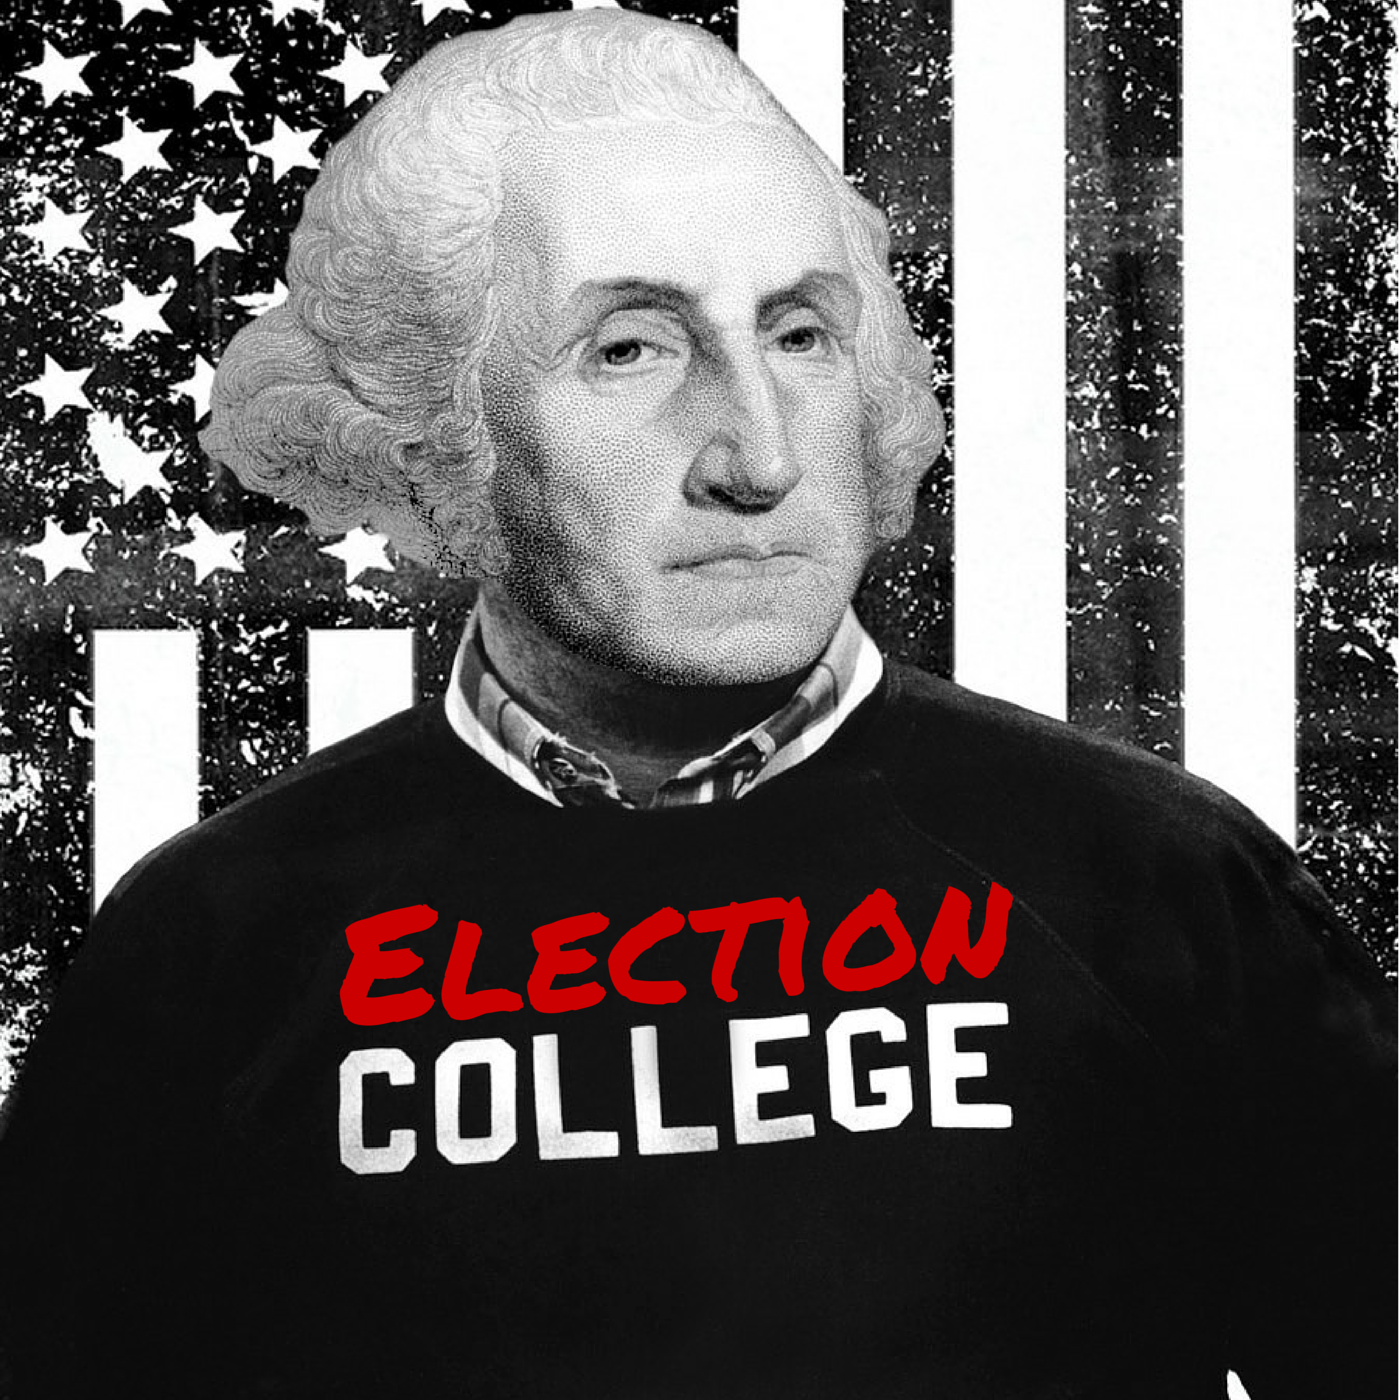 I Like Ike - Election of 1952 | Episode #057 | Election College: United States Presidential Election History